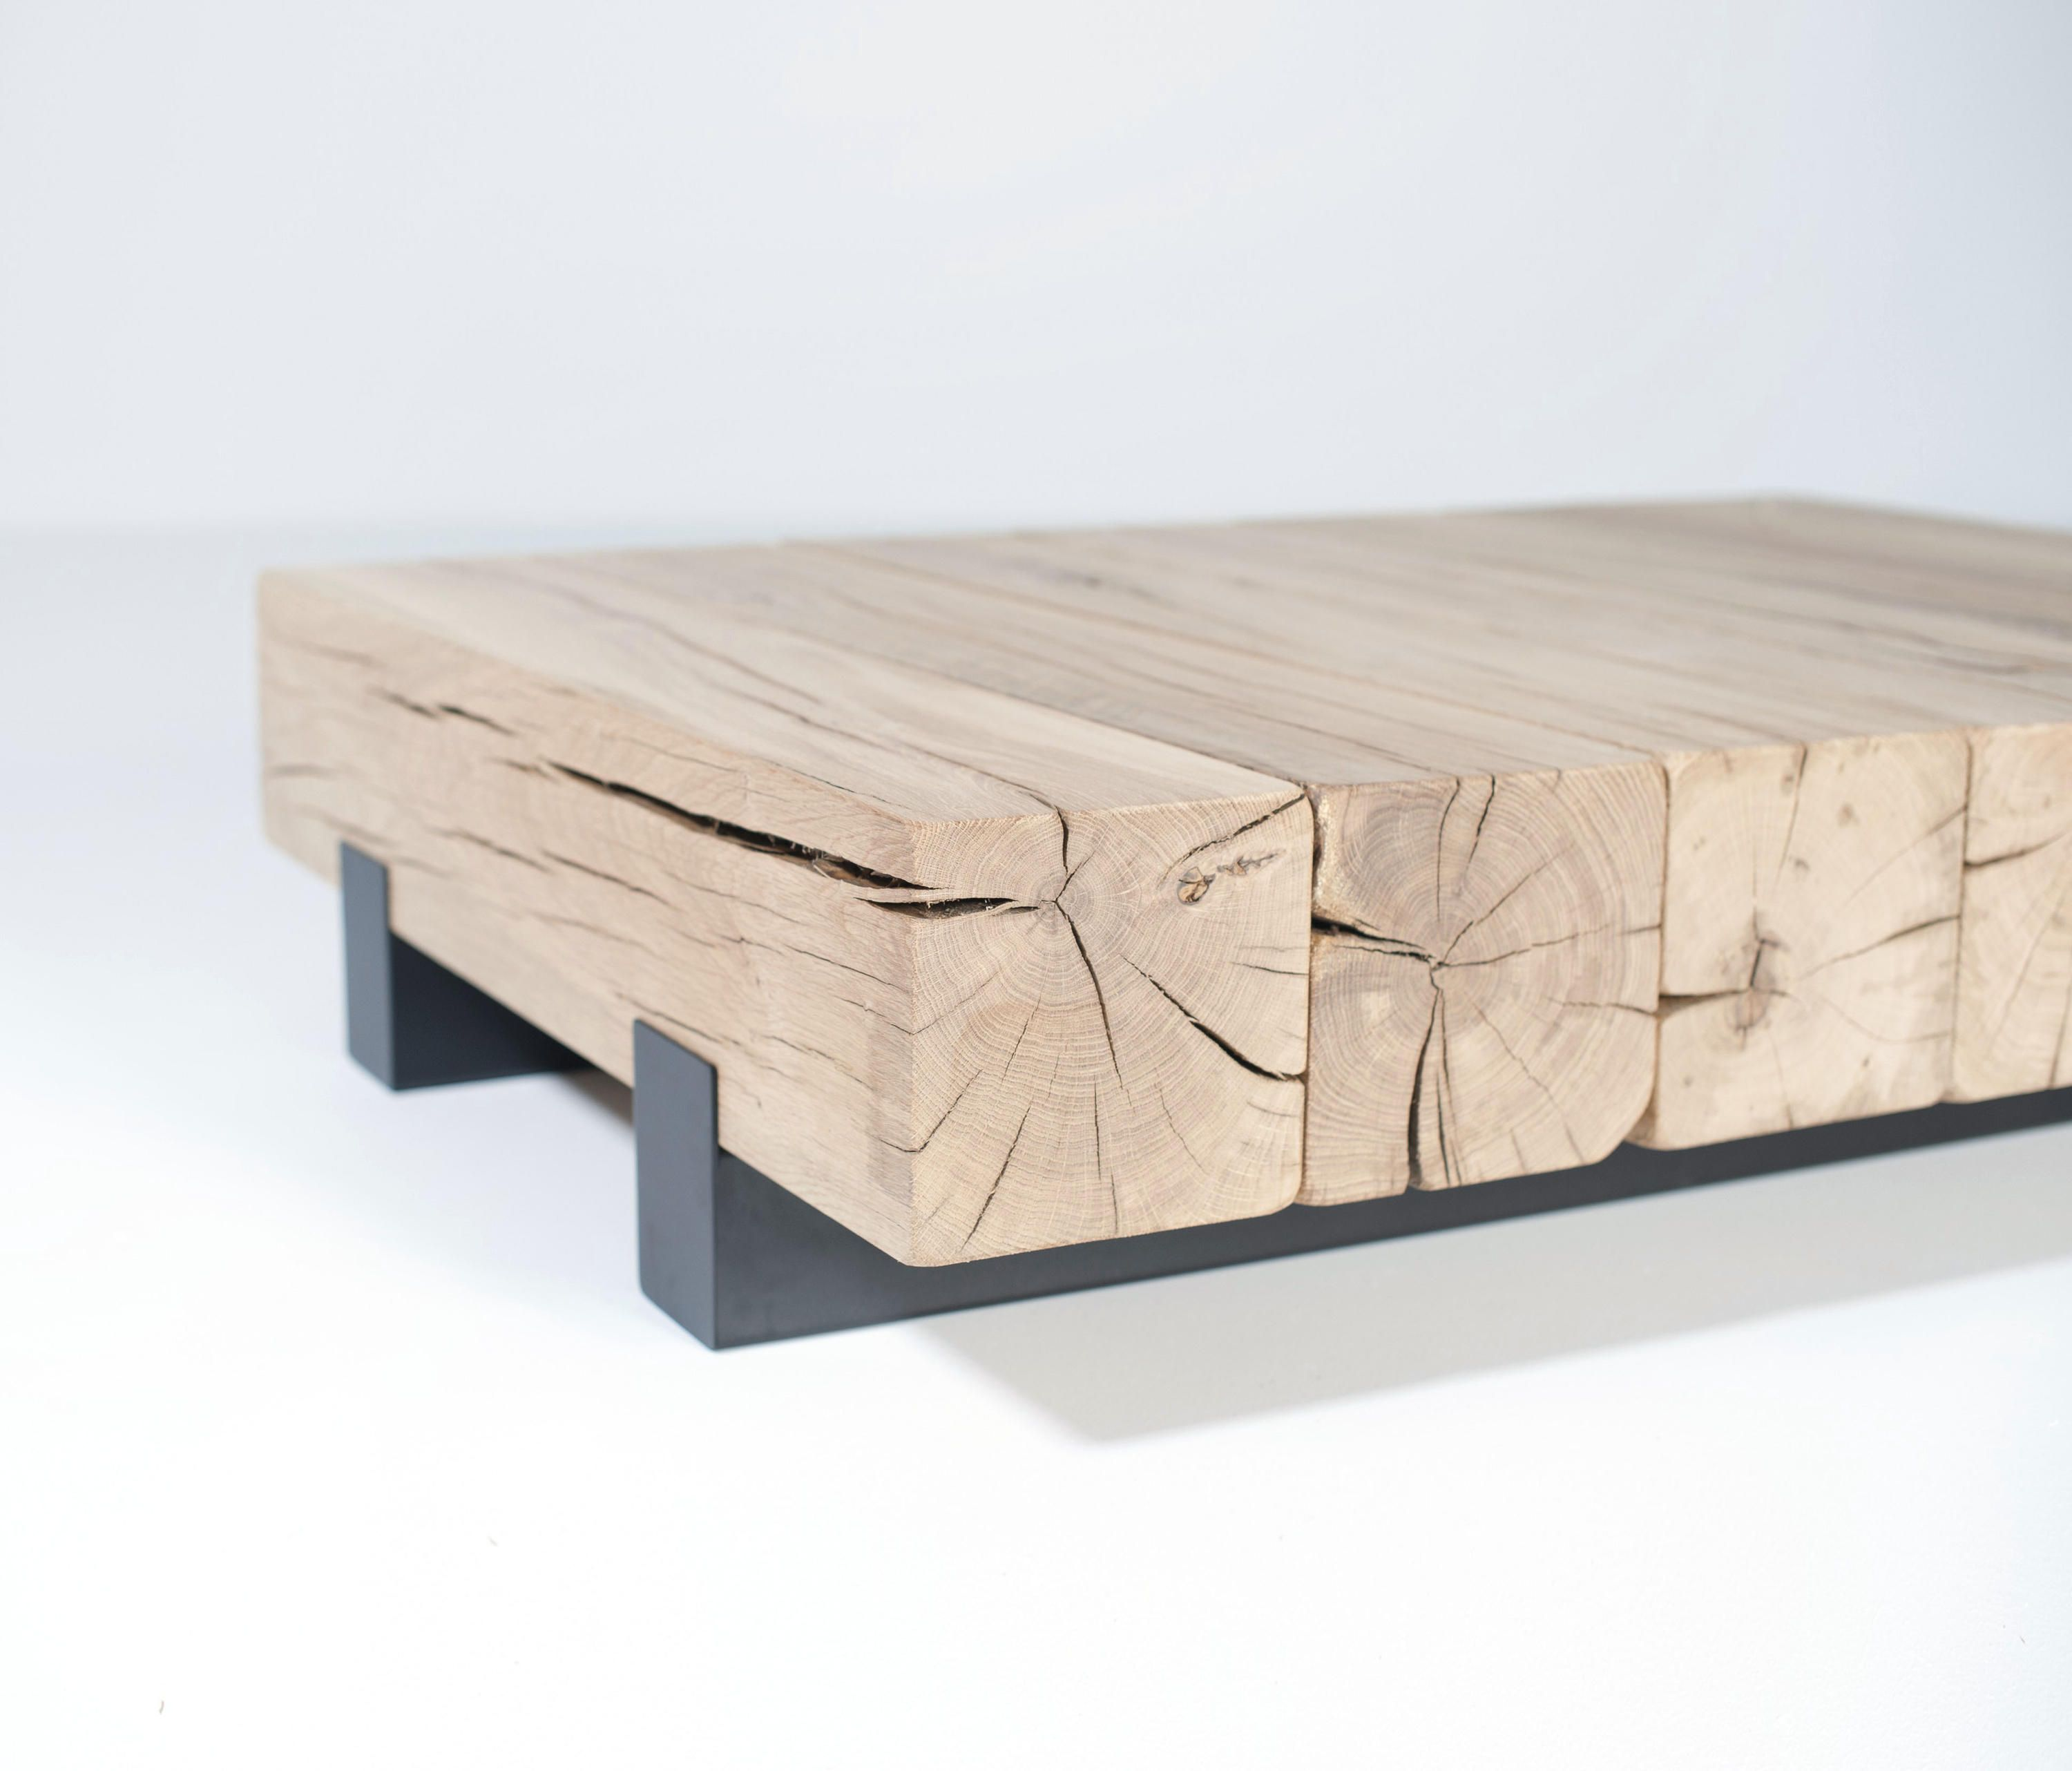 Couchtisch Montain Oak This Solid Oak Coffee Table Consist Of 7 Robust Beams Which